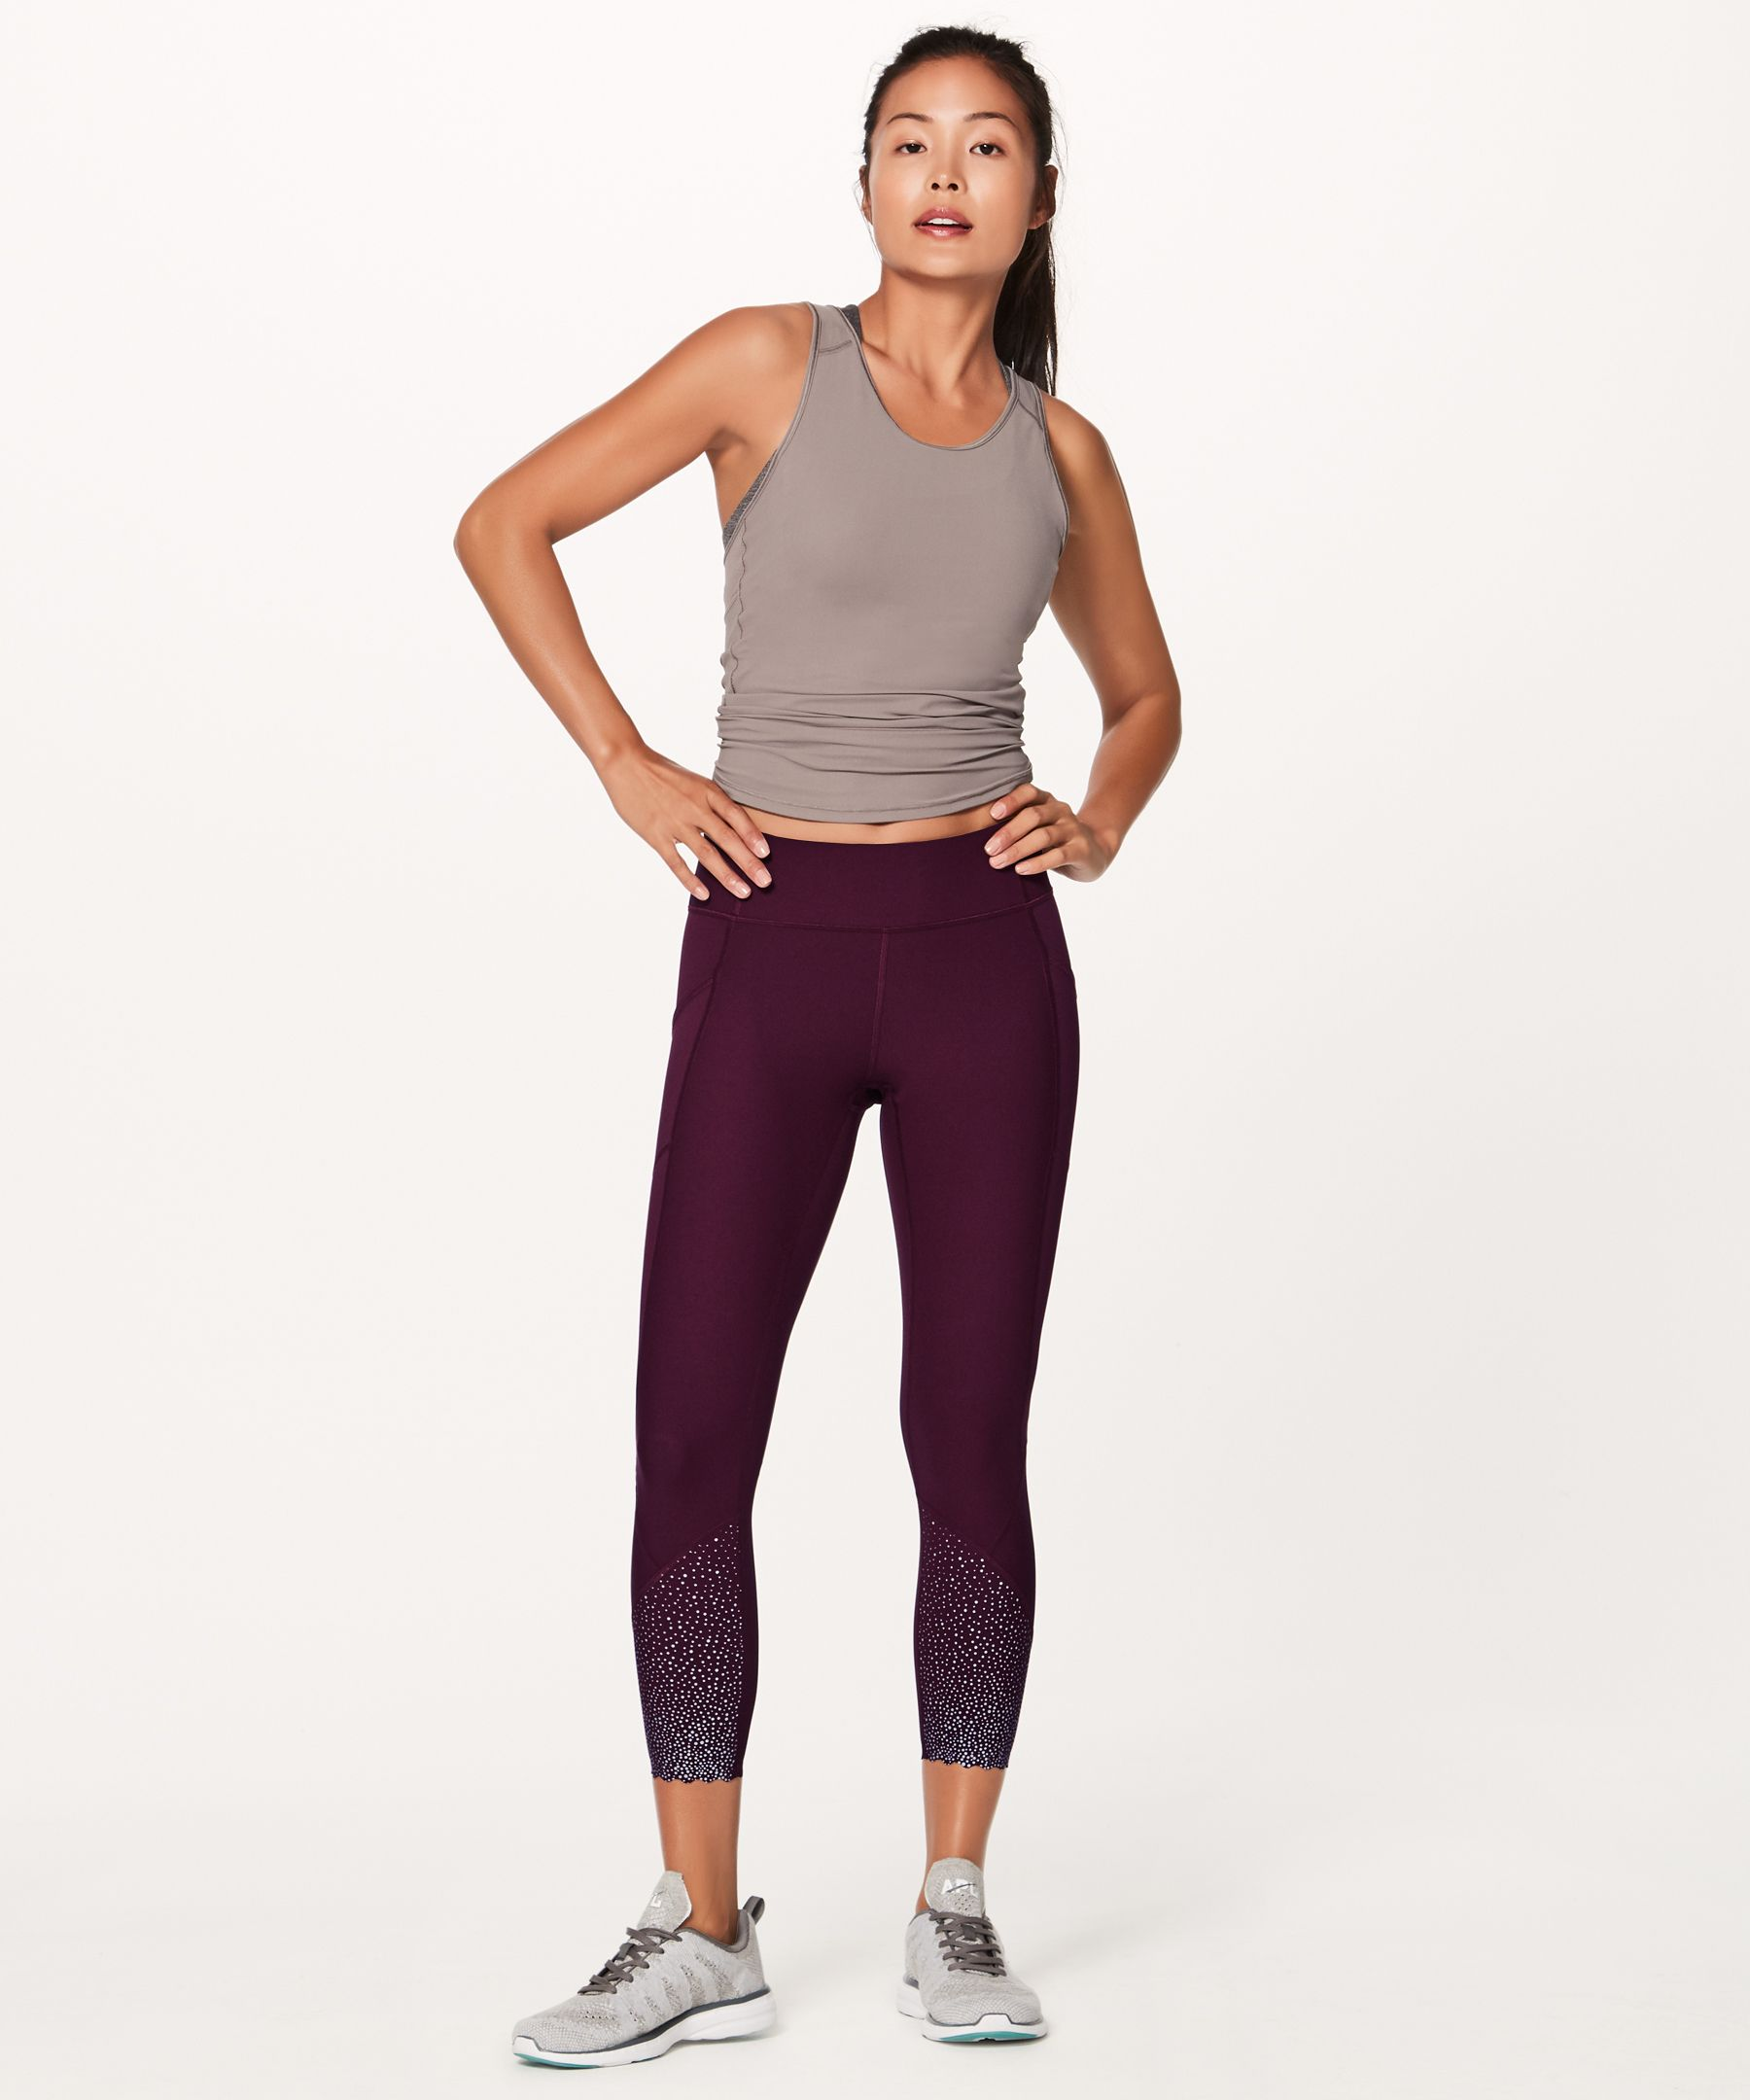 We engineered these training tights with moderate compression to help stabilize your muscles—and included lots of storage options. Made with Full-On® Luxtreme fabric that offers great support and coverage with a smooth feel and is sweat-wicking and four-way stretch.